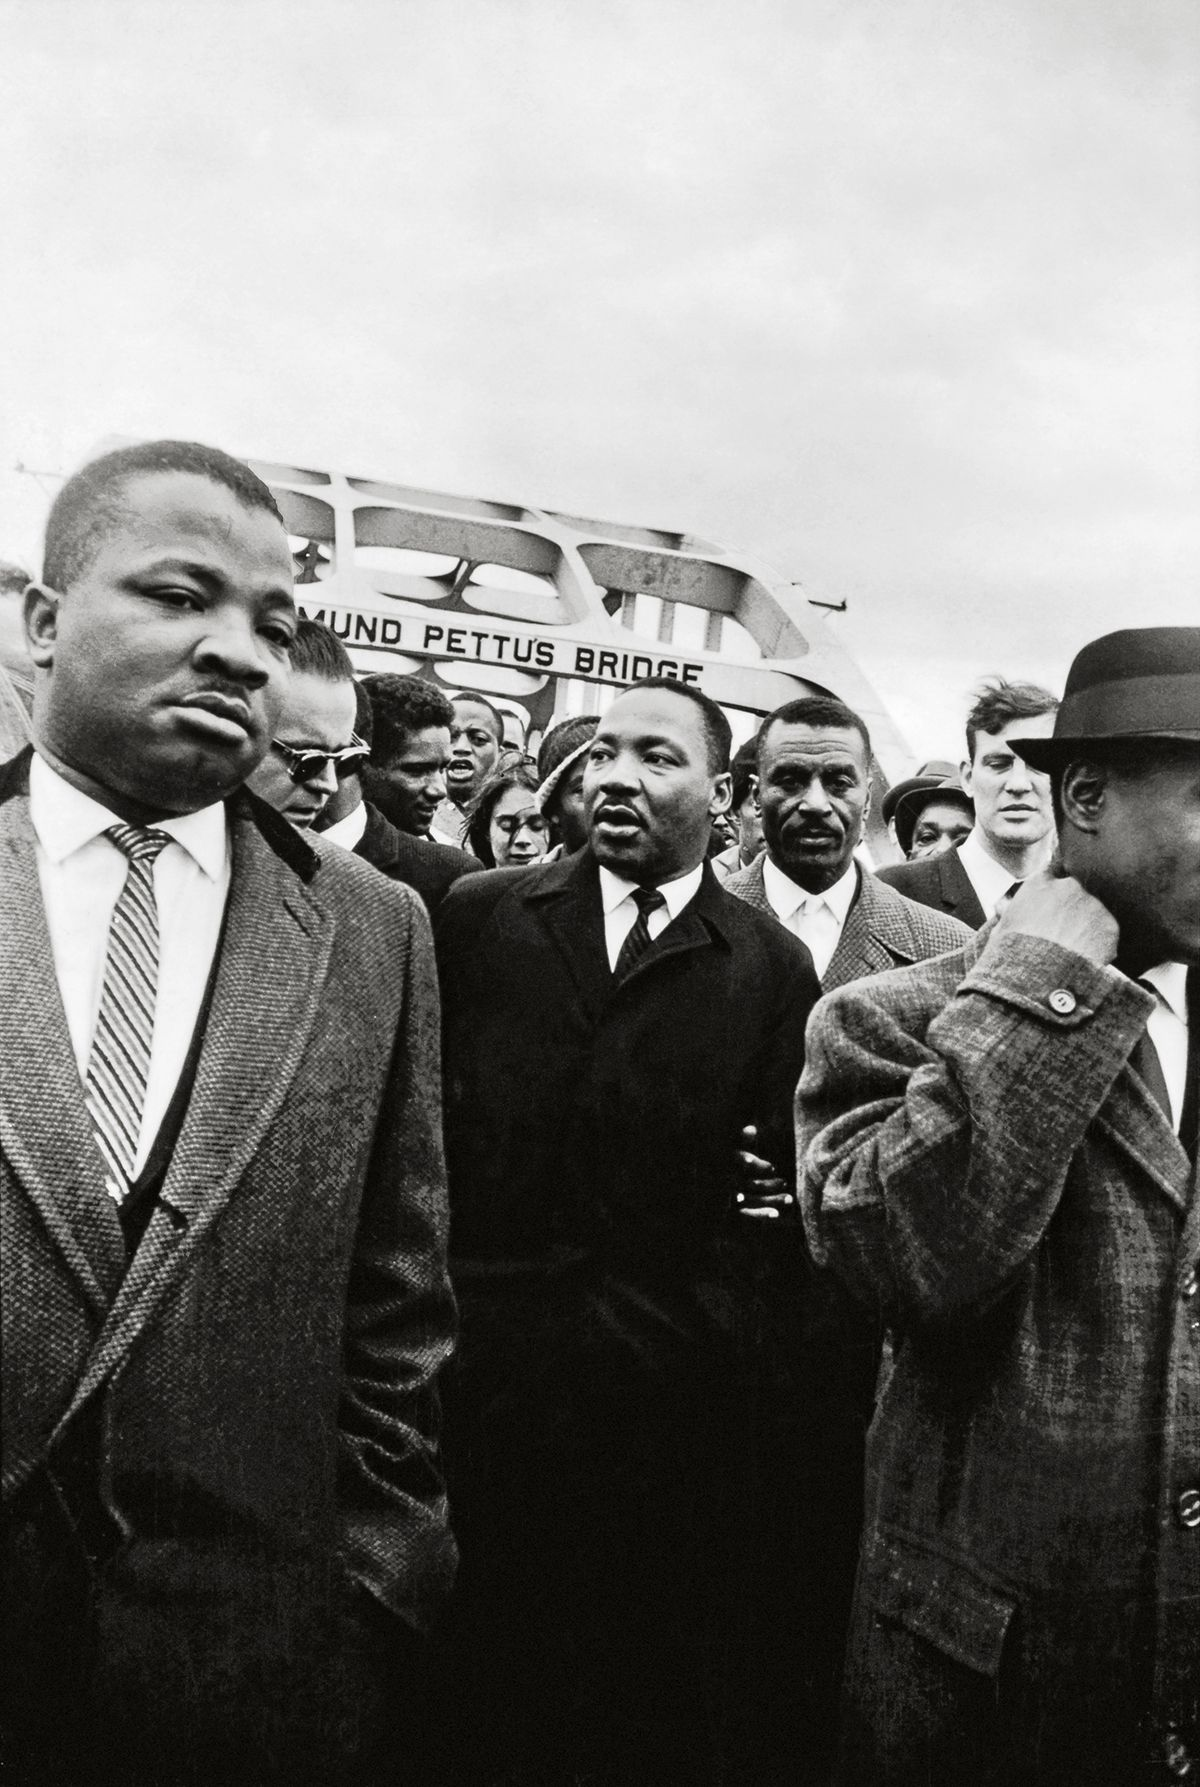 Dr. King Crosses the Edmund Pettus Bridge with Reverends Ralph Abernathy & Fred Shuttlesworth, 1965, 20 x 16 Inches, Silver Gelatin Photograph, Edition of 25